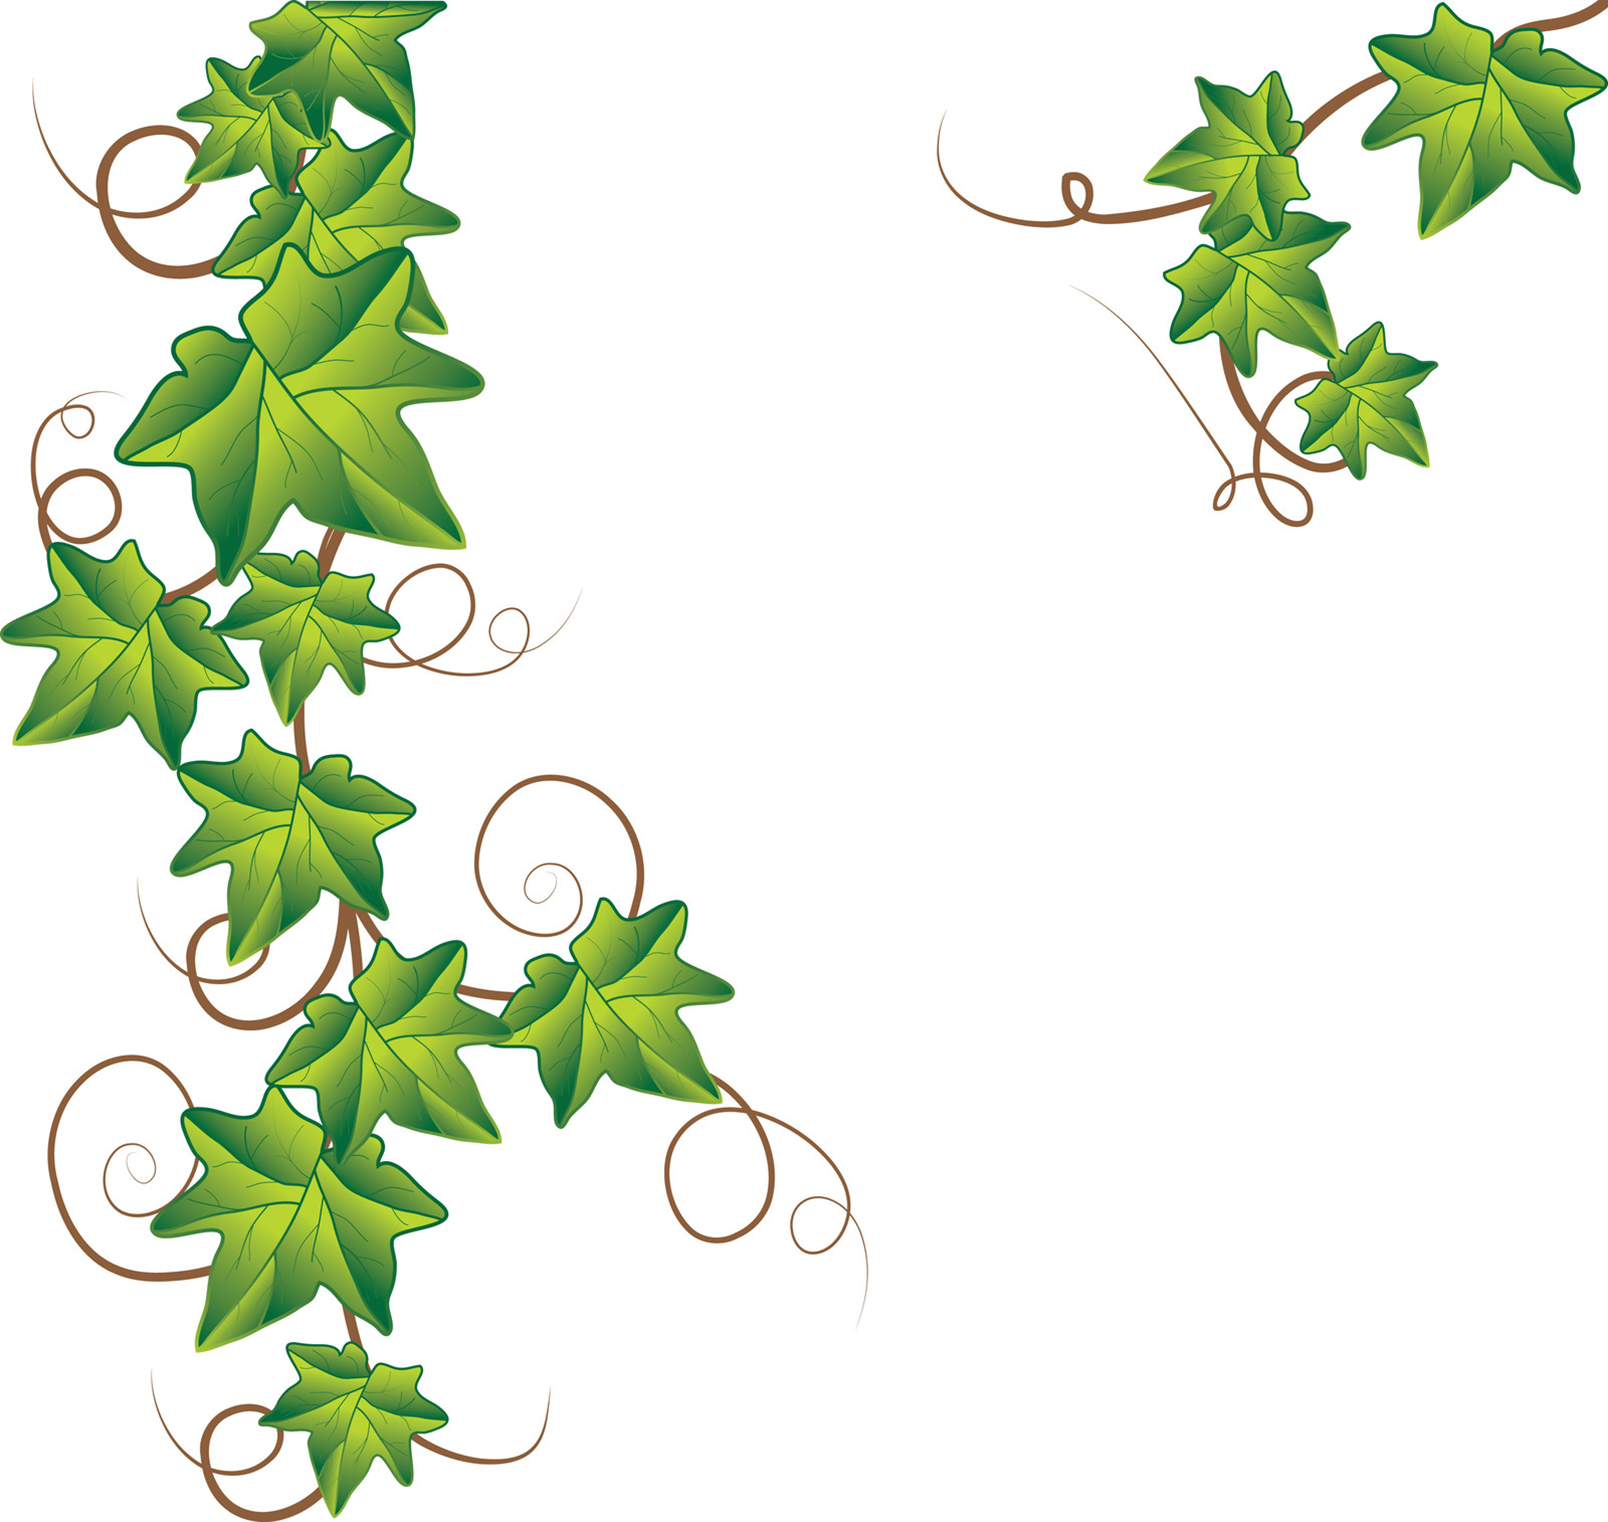 Ivy Free Images At Clker Com Vector Clip-Ivy Free Images At Clker Com Vector Clip Art Online Royalty Free-15